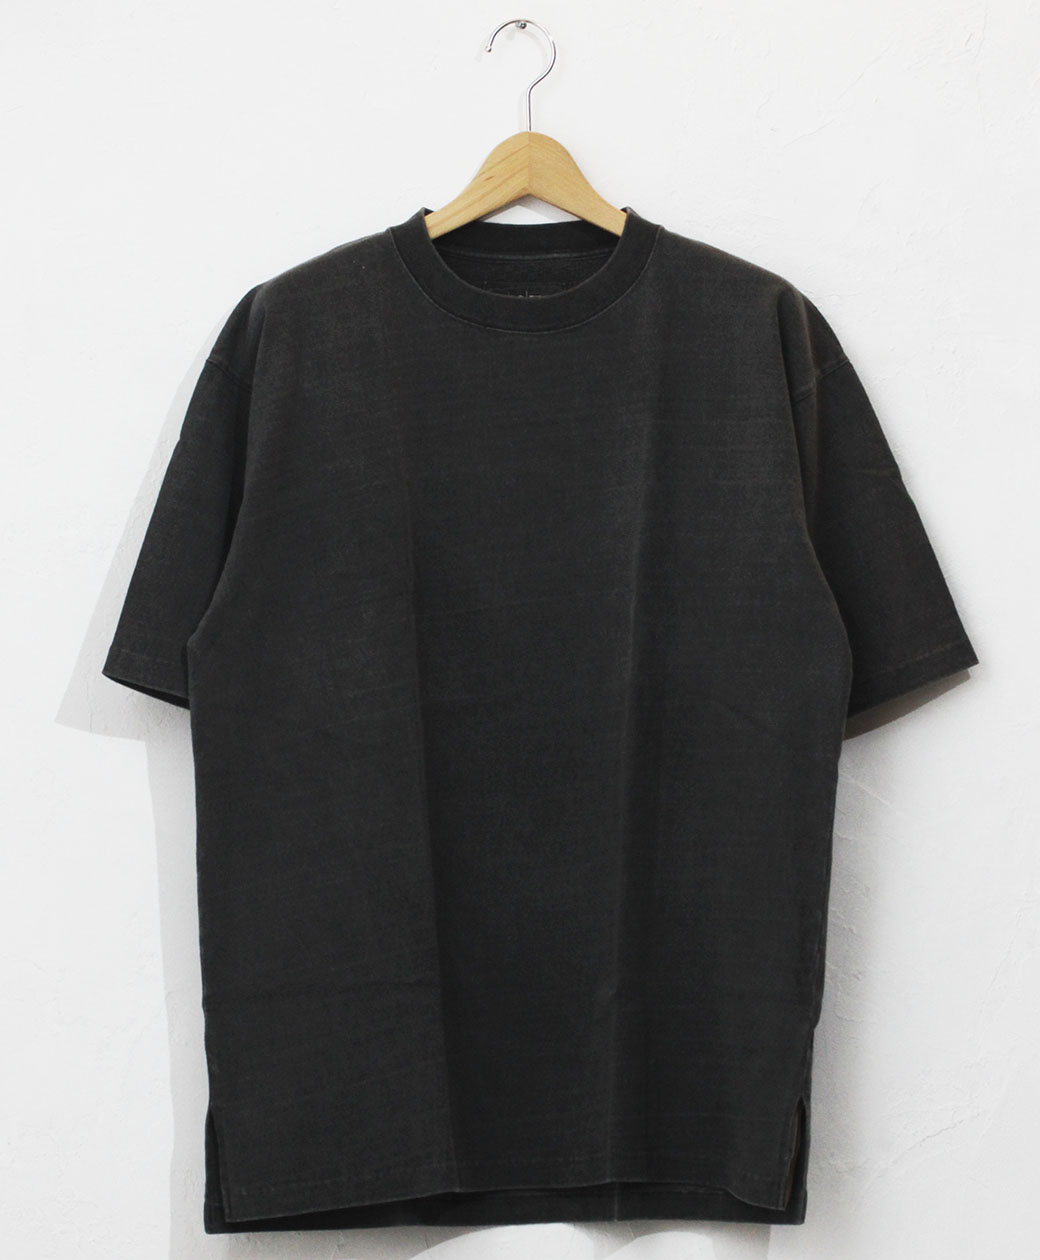 hobo ARTISAN S/S CREW NECK TEE COTTON HEAVYWEIGHT JERSEY CHARCOAL DYED